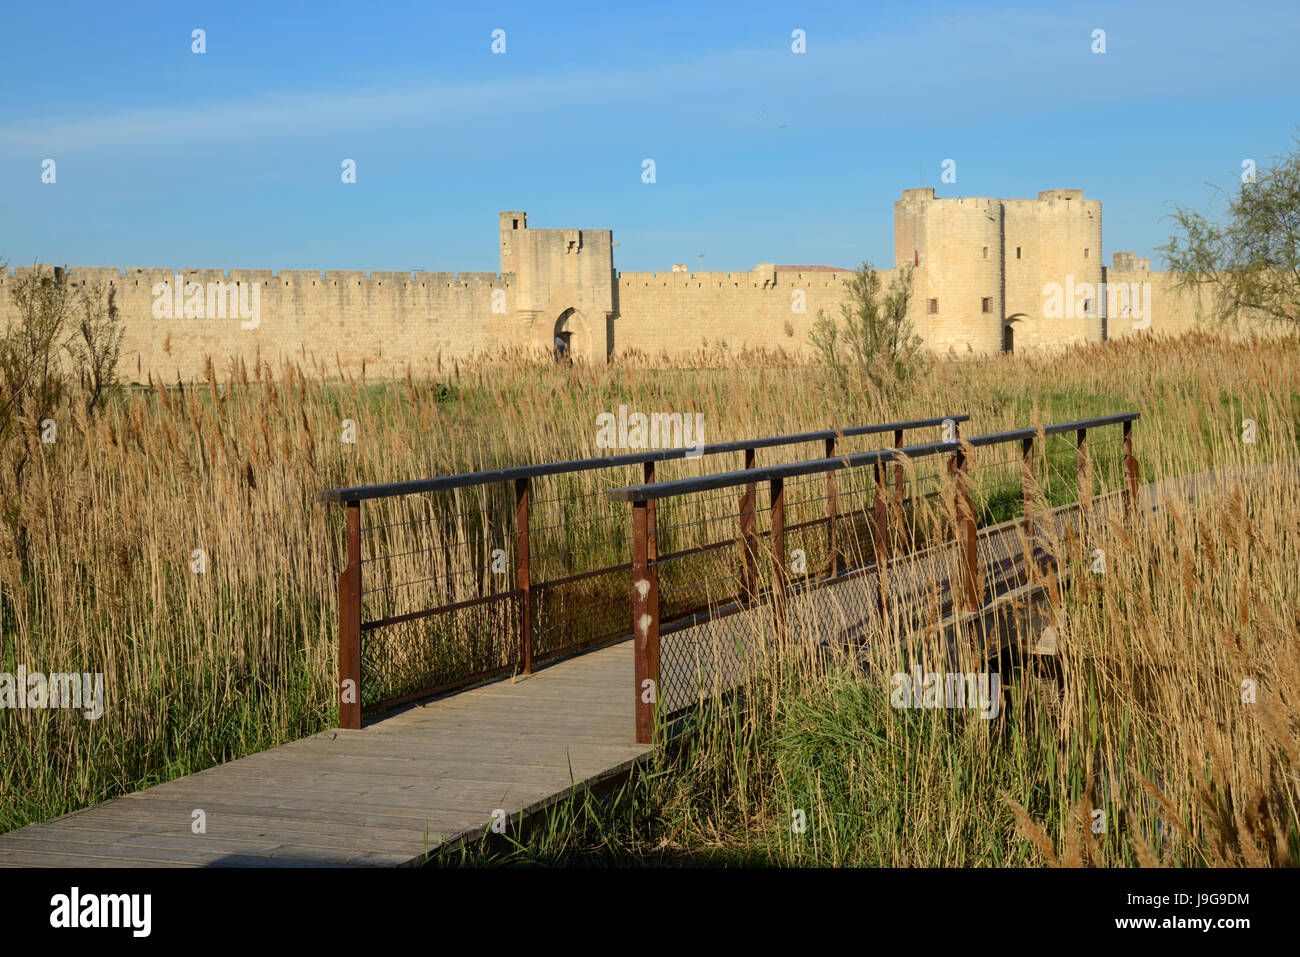 Southern Sea Walls of the Fortified Town of Aigues-Mortes with Reed Beds and Wooden Walkway or Bridge France - Stock Image